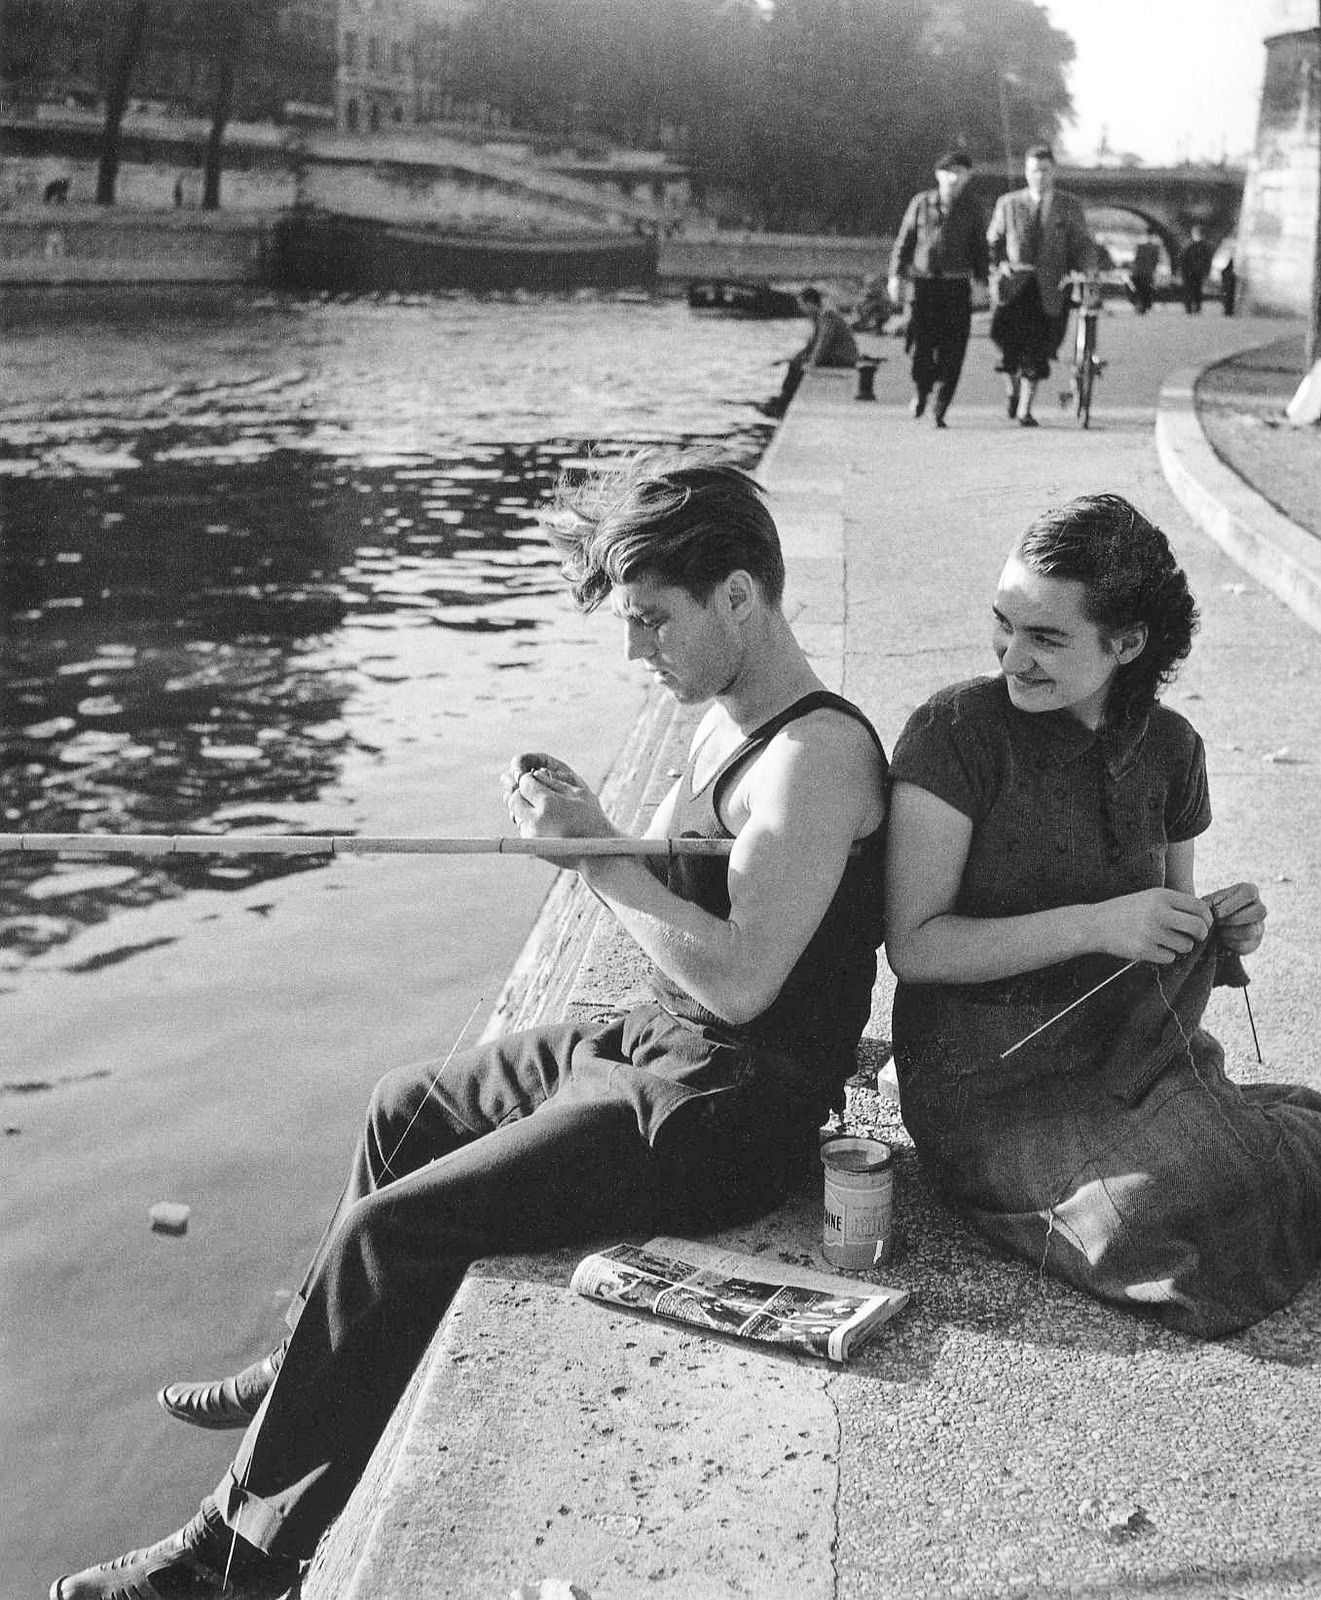 The fisherman and the woman knitting, 1951 Robert Doisneau